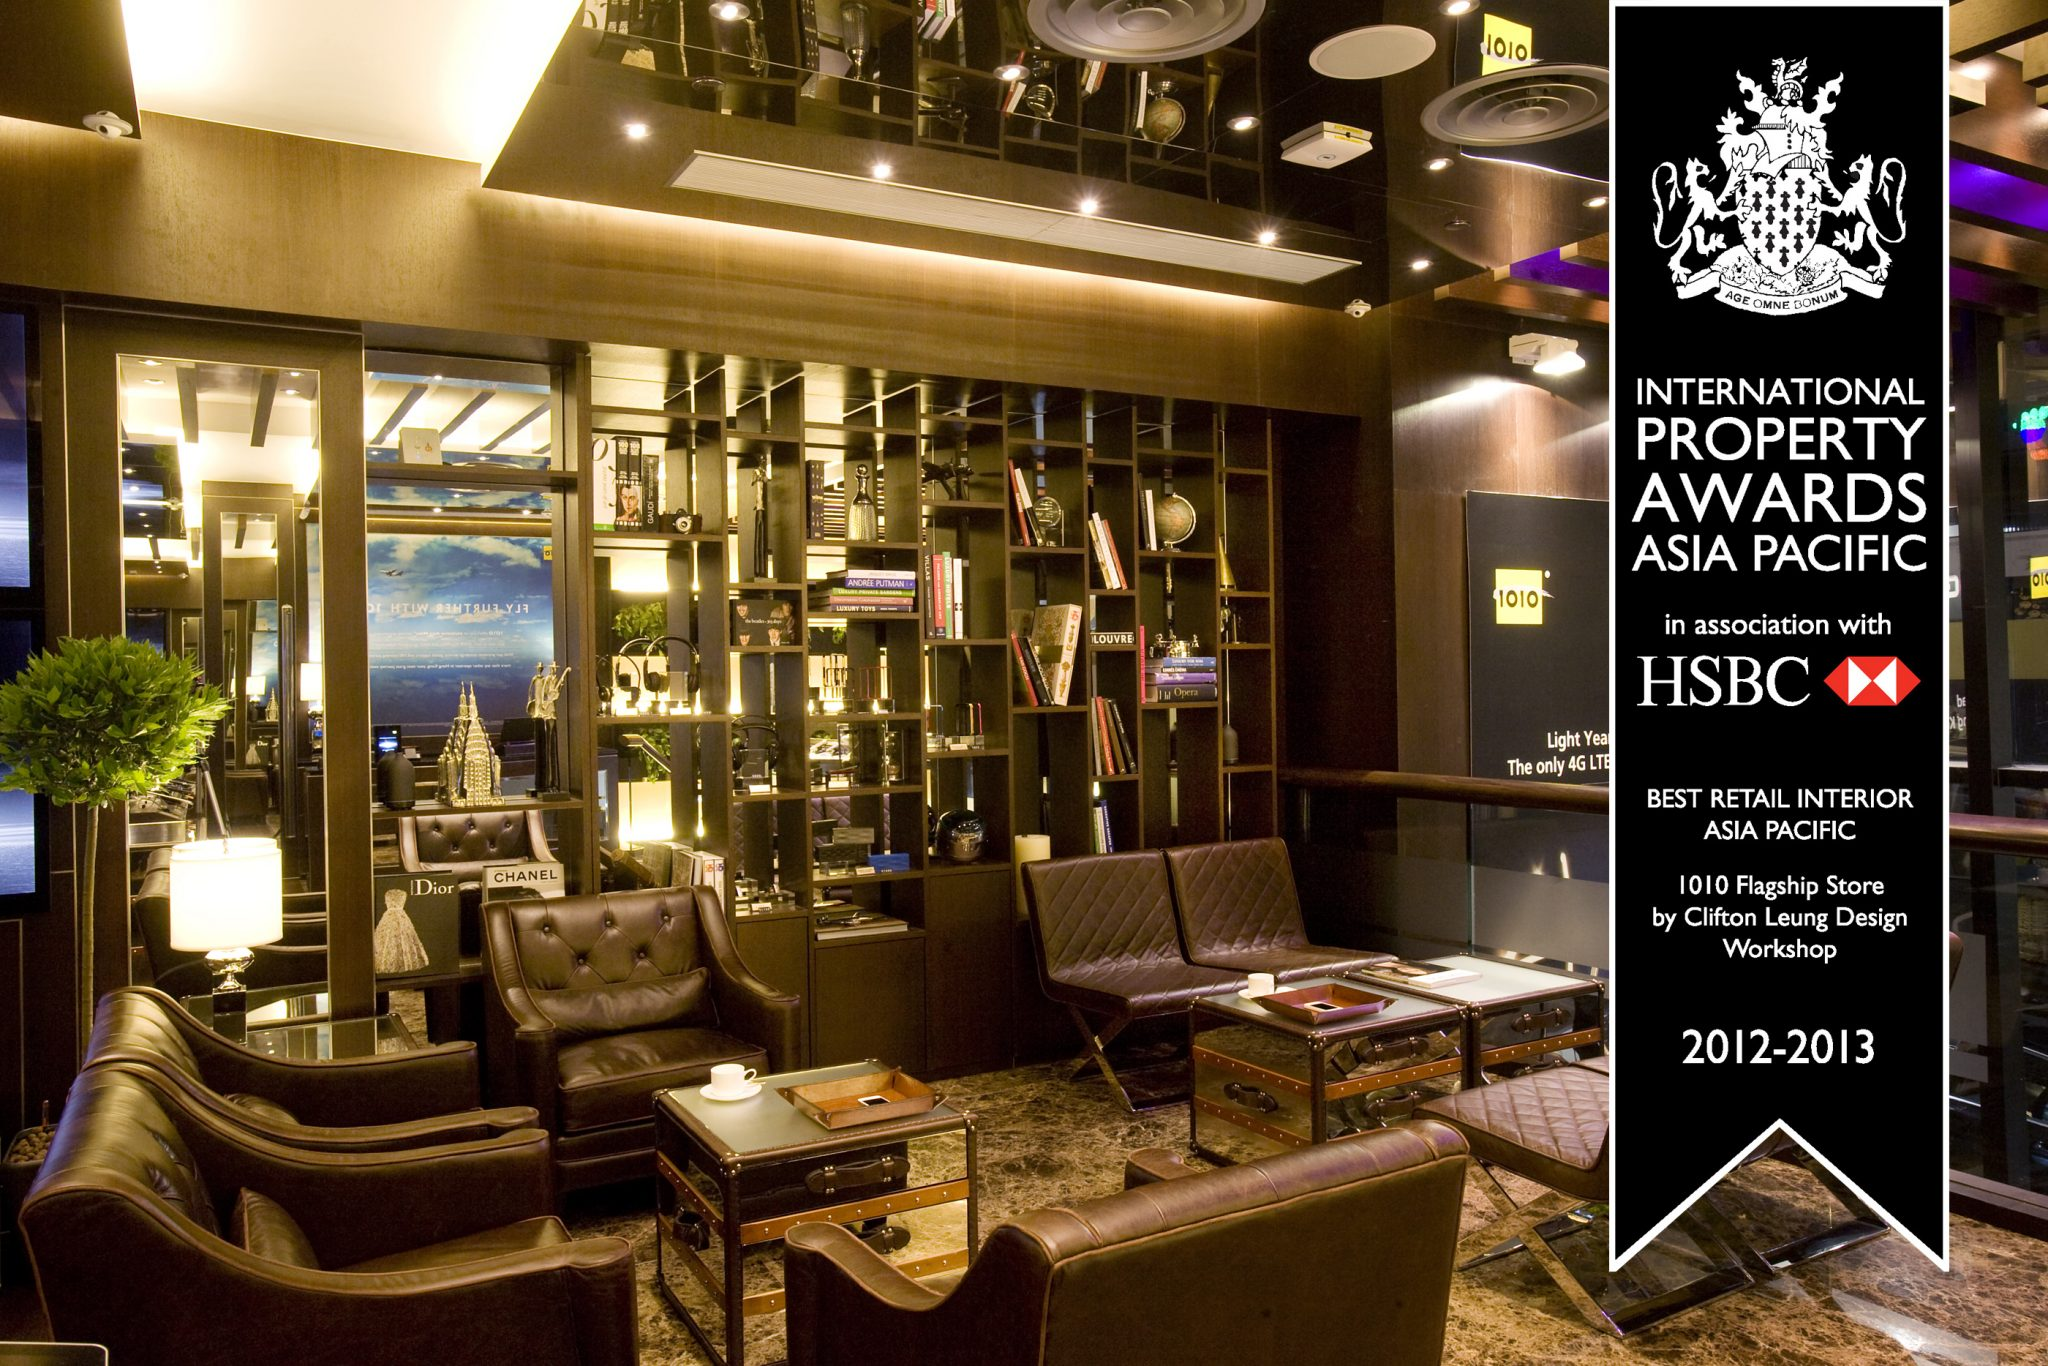 CTM Flagship Store – Best Retail Interior Macau, Asia Pacific Property Awards 2015/16